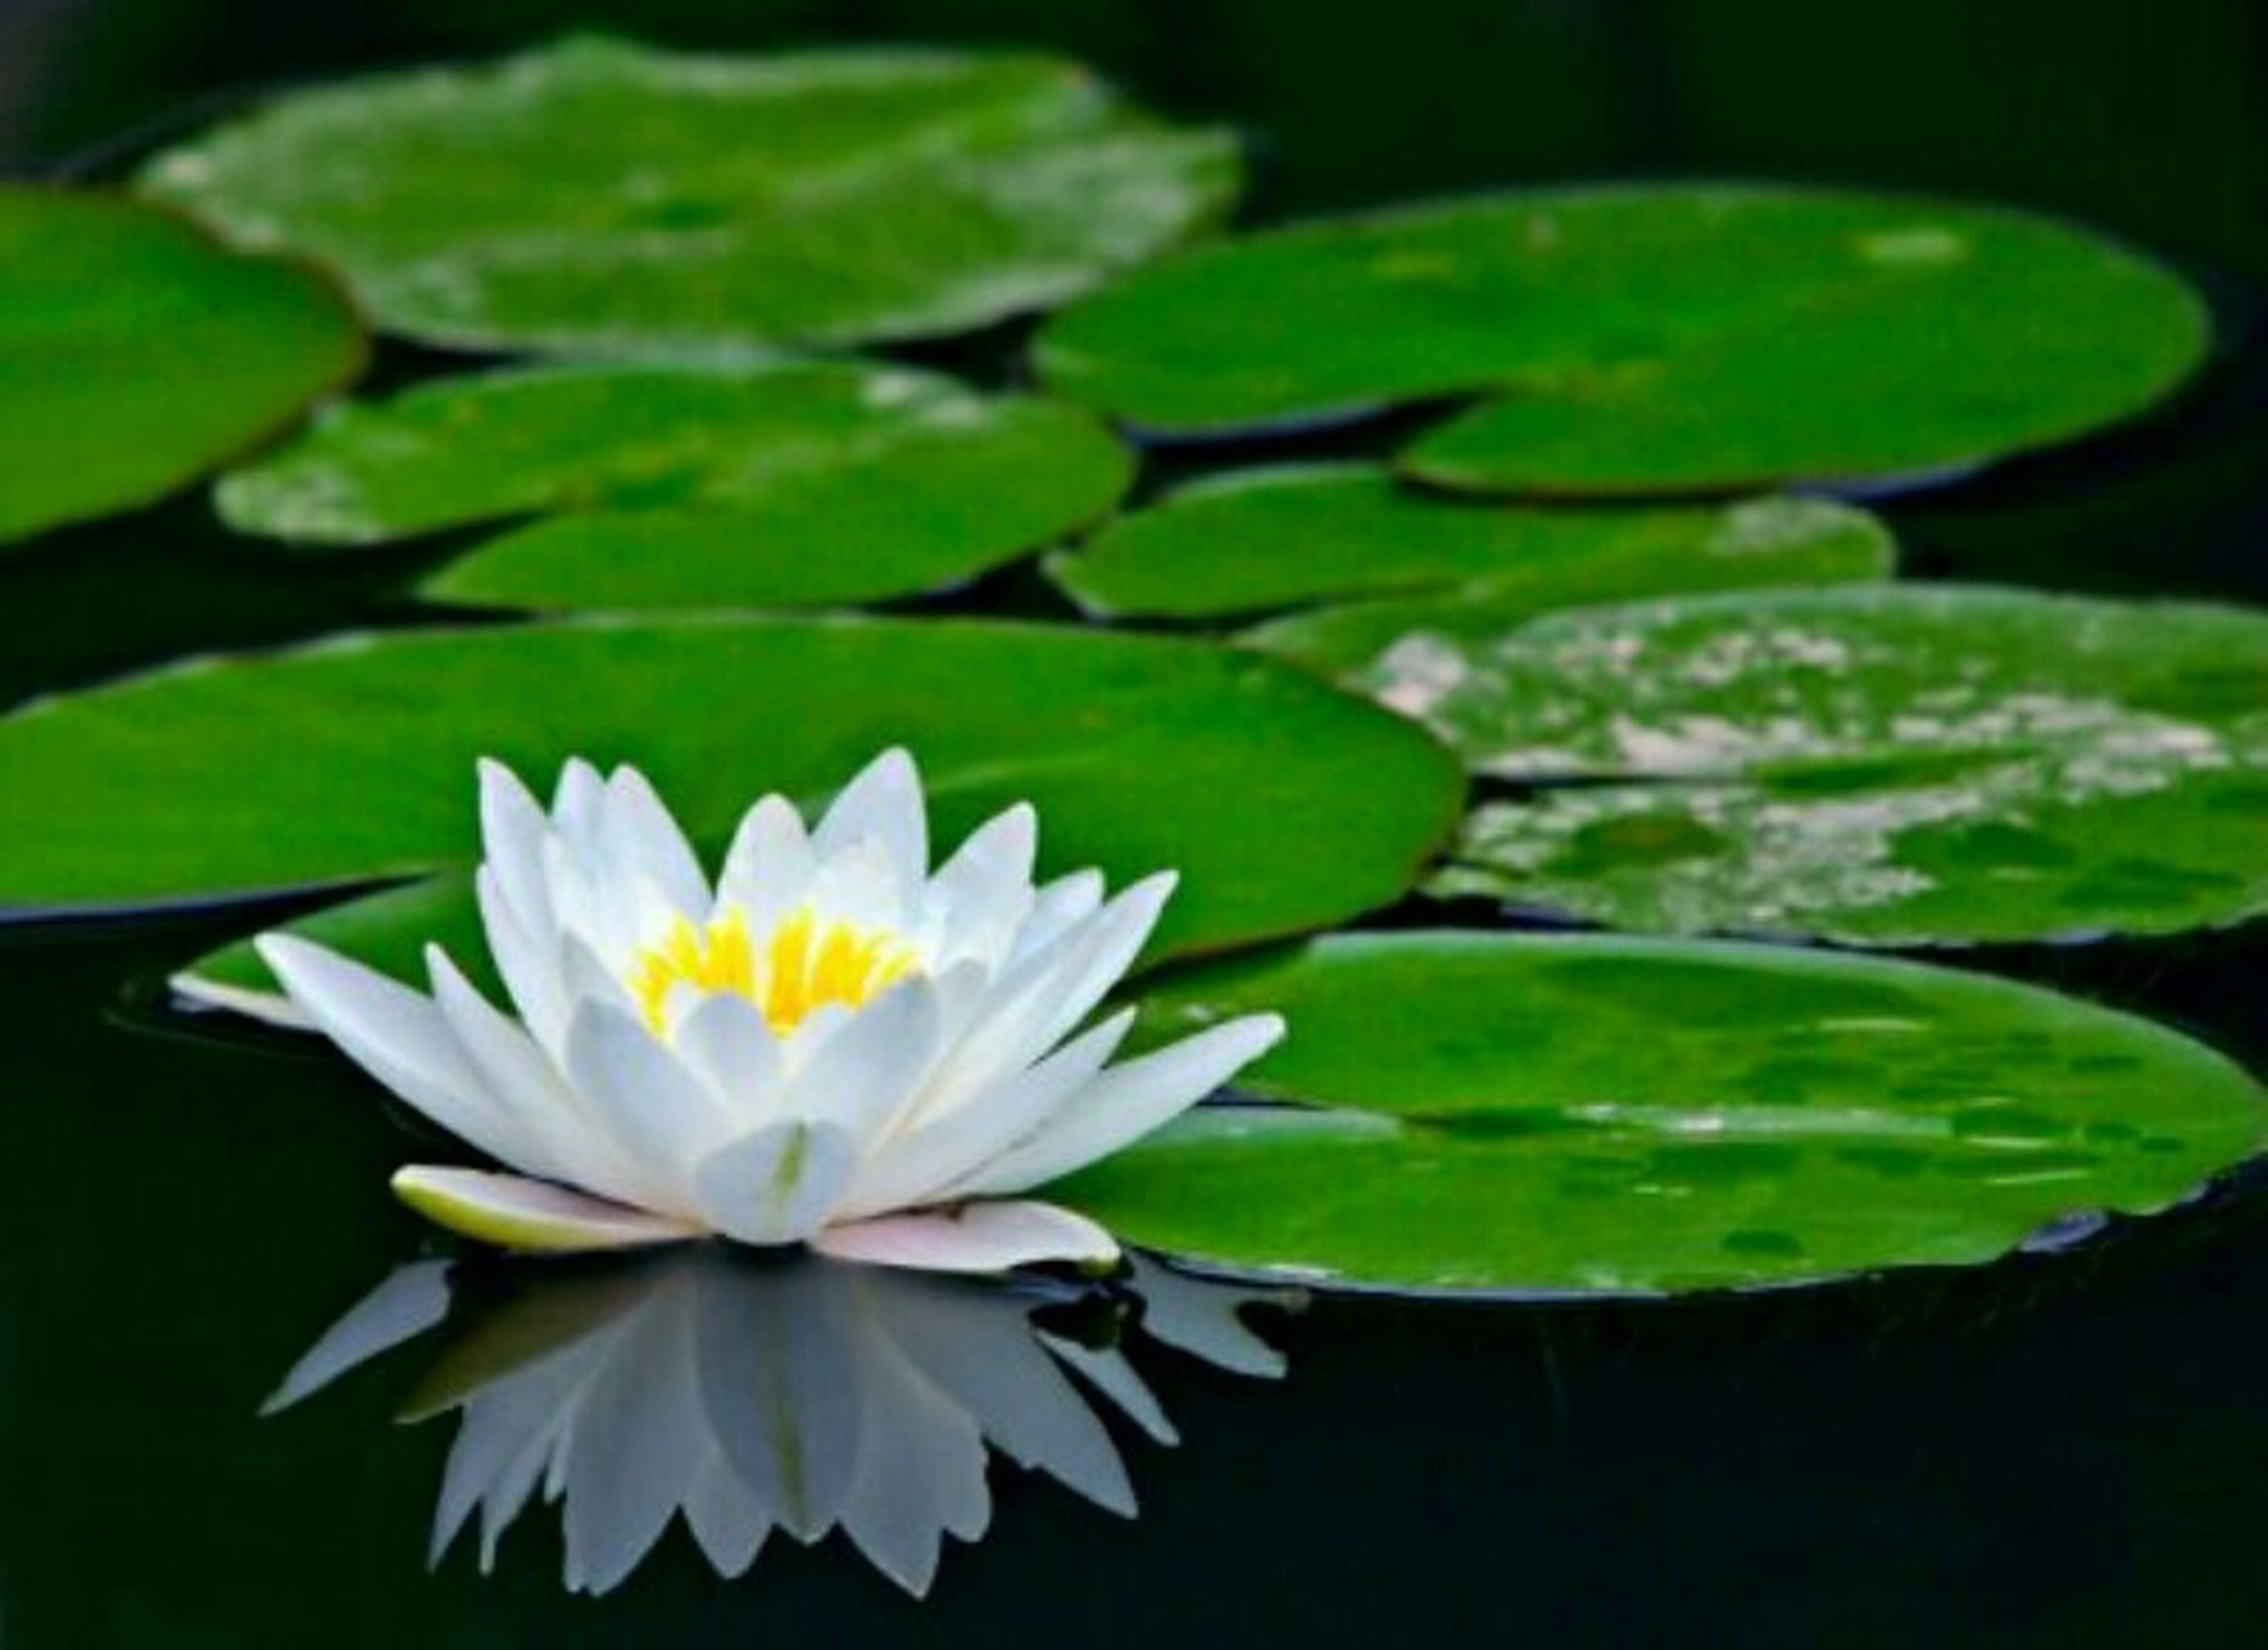 water lily, flower, petal, freshness, pond, fragility, leaf, floating on water, lotus water lily, flower head, water, growth, beauty in nature, white color, nature, single flower, plant, green color, close-up, lake